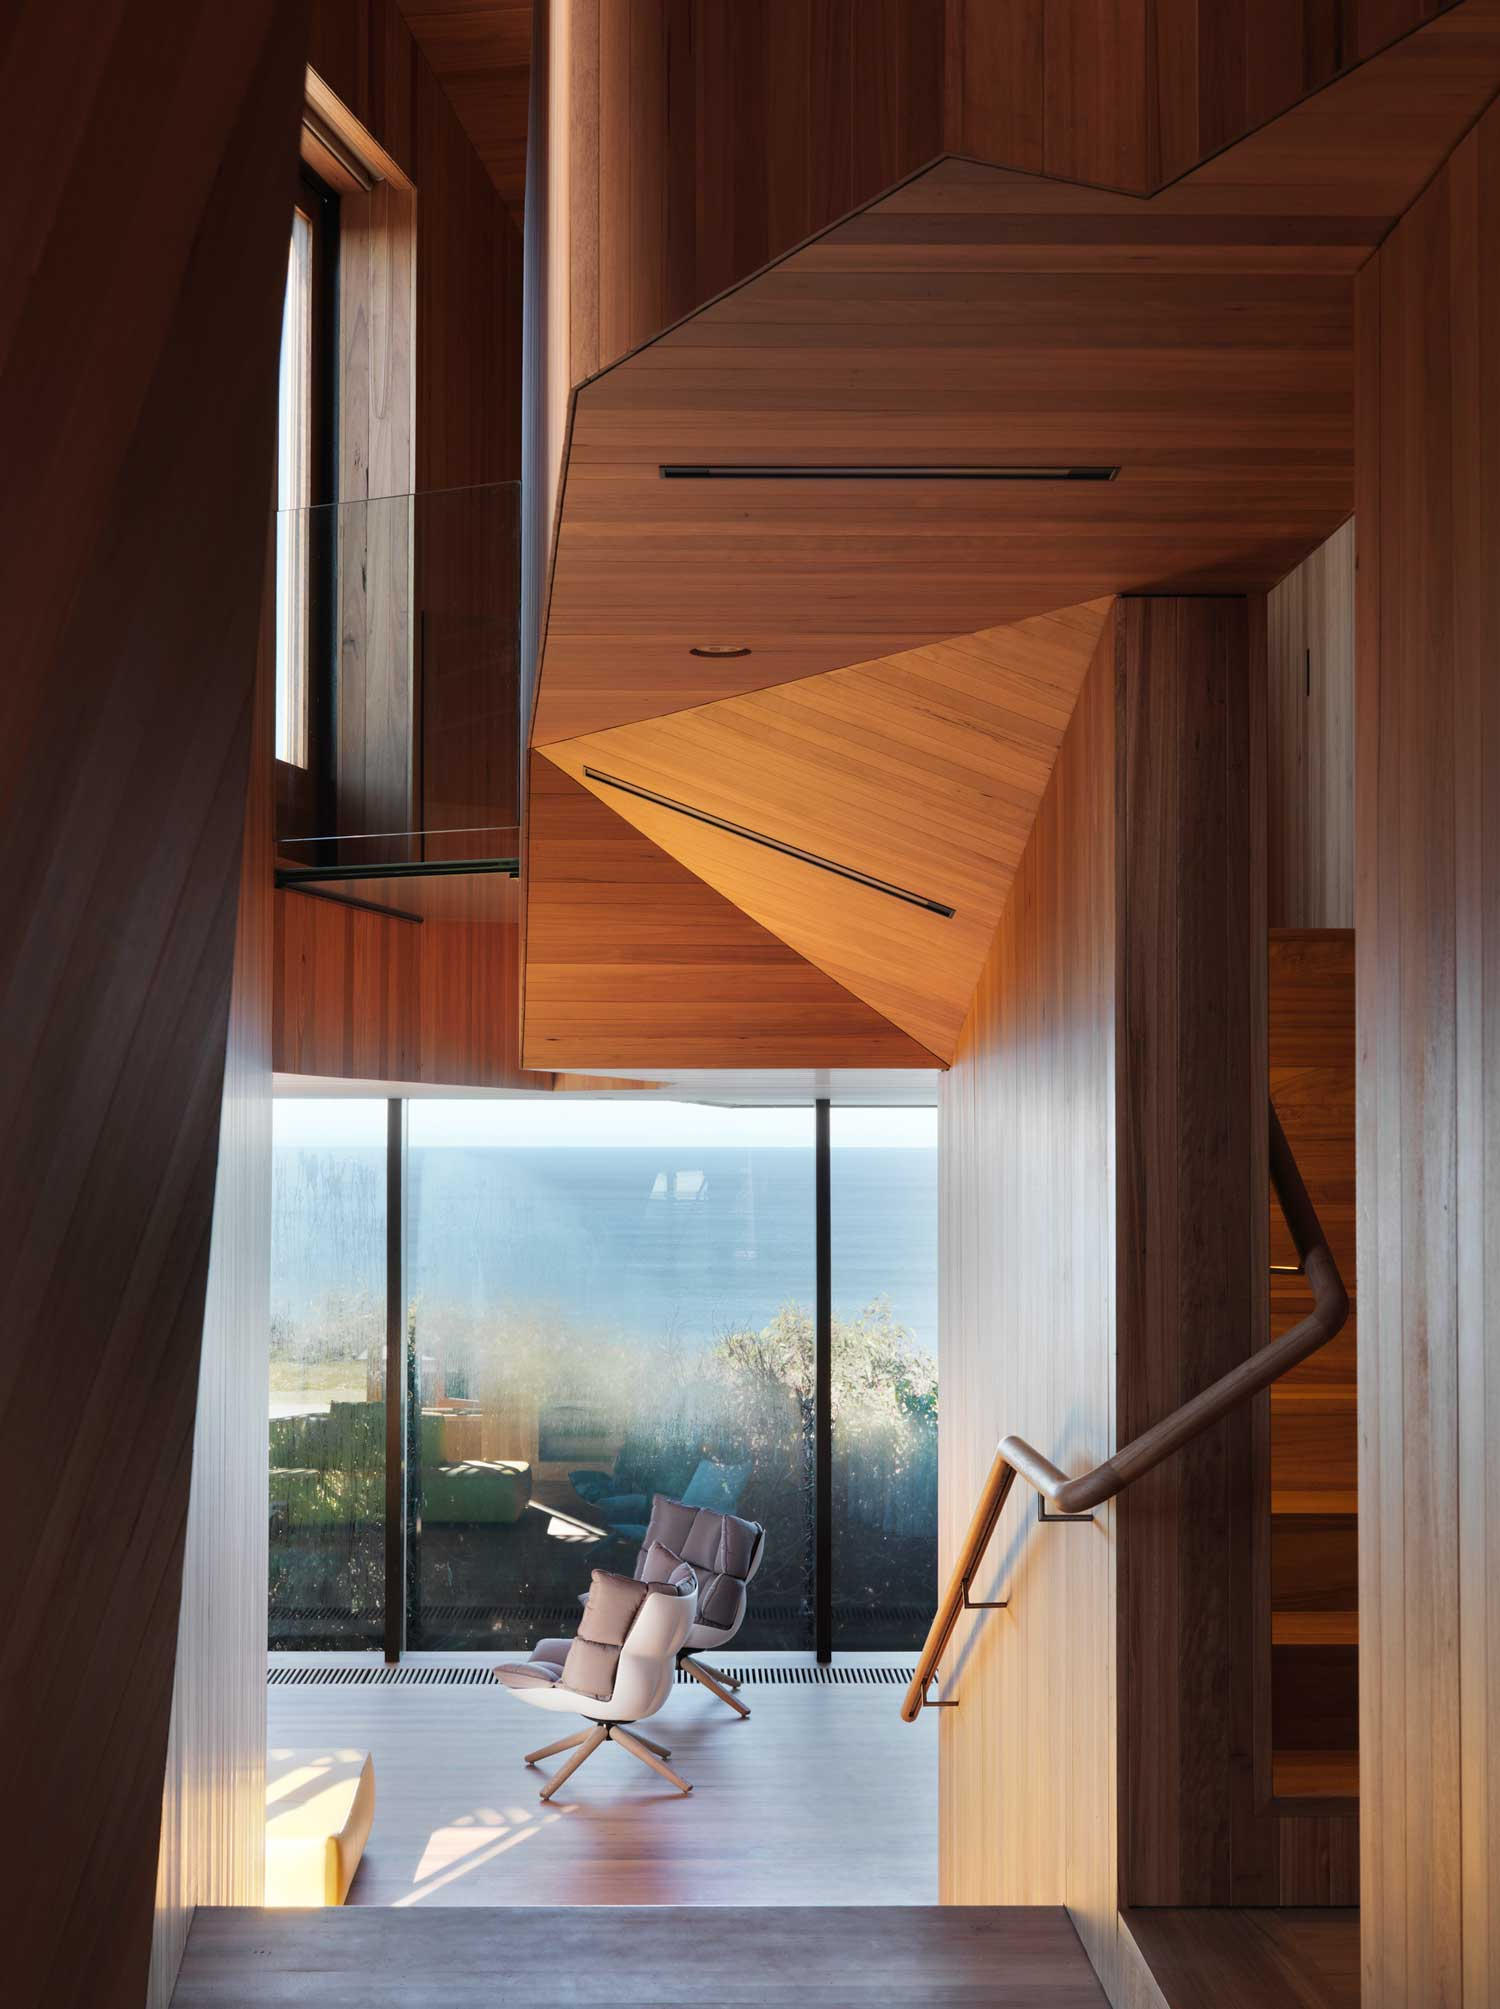 Fairhaven Residence by John Wardle | Yellowtrace